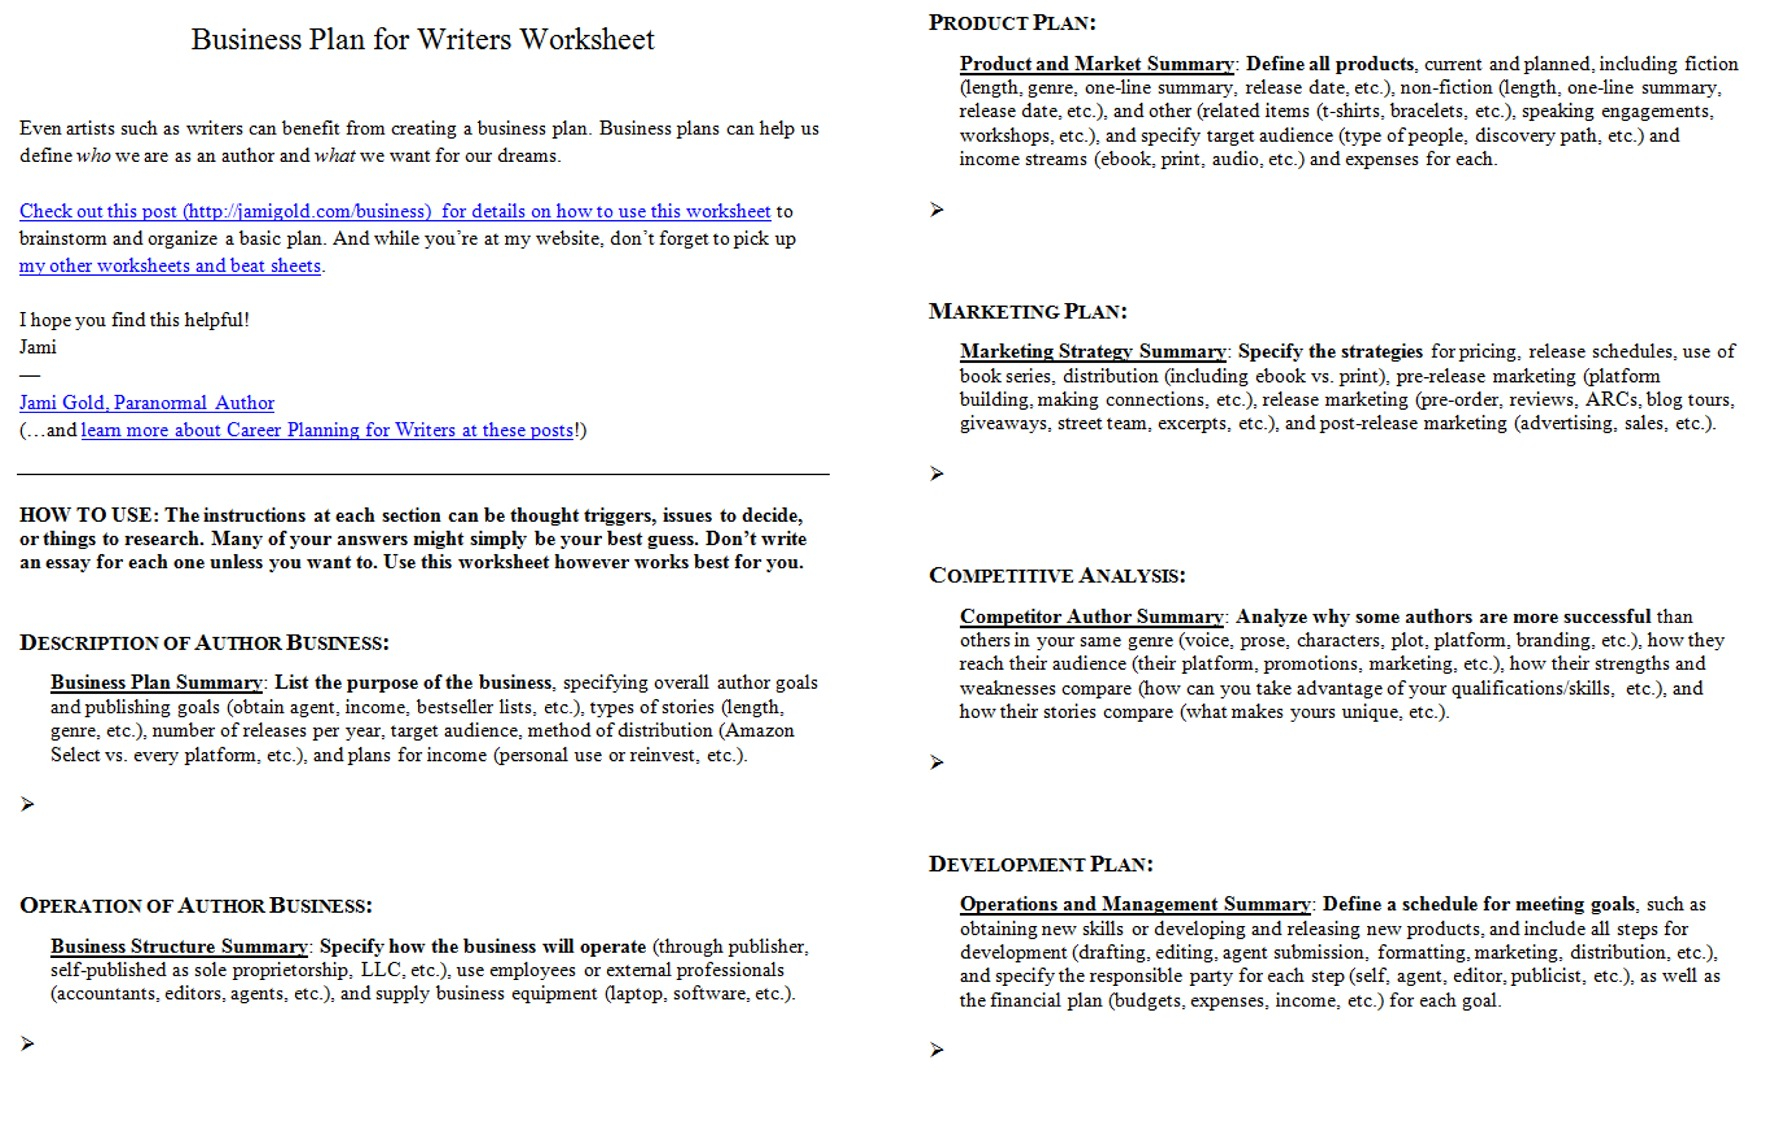 Aldiablosus  Marvelous Worksheets For Writers  Jami Gold Paranormal Author With Likable Screen Shot Of Both Pages Of The Business Plan For Writers Worksheet With Astounding Ai And Ay Worksheets Also Multiplying Binomials And Trinomials Worksheet In Addition Social Security Benefits Worksheet A And Protagonist Vs Antagonist Worksheet As Well As Rd Grade Money Worksheets Additionally Series Of Operations Worksheets From Jamigoldcom With Aldiablosus  Likable Worksheets For Writers  Jami Gold Paranormal Author With Astounding Screen Shot Of Both Pages Of The Business Plan For Writers Worksheet And Marvelous Ai And Ay Worksheets Also Multiplying Binomials And Trinomials Worksheet In Addition Social Security Benefits Worksheet A From Jamigoldcom